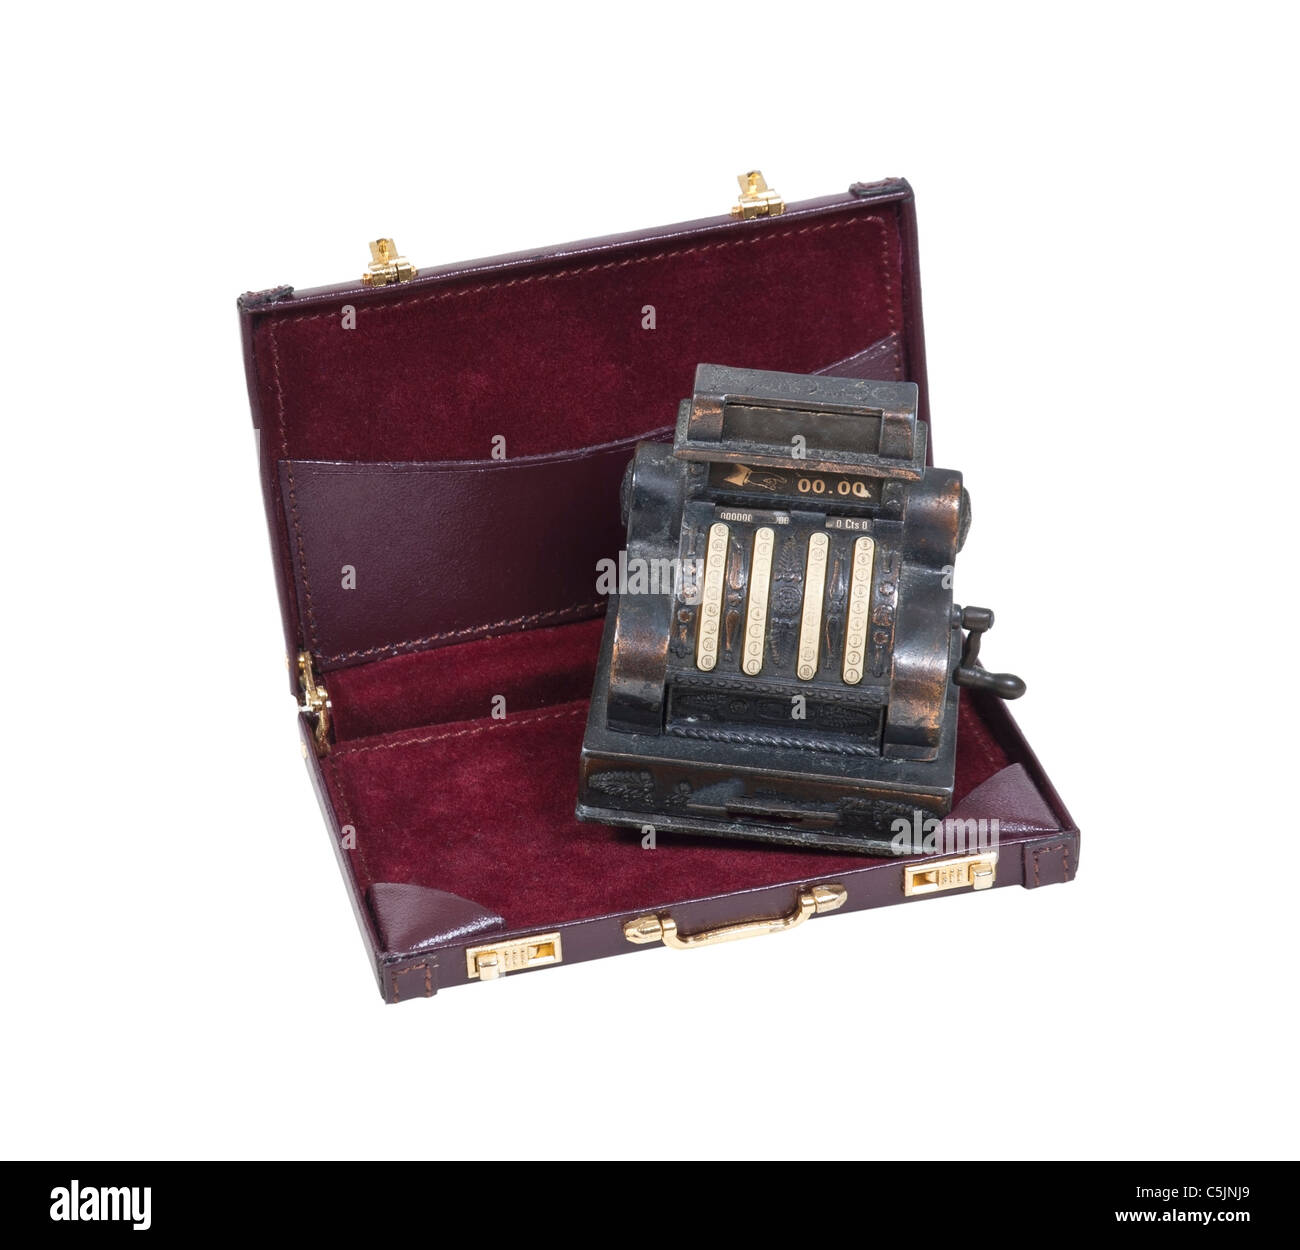 Business sales shown by an antique cash register used to store money for business transactions in a briefcase - - Stock Image